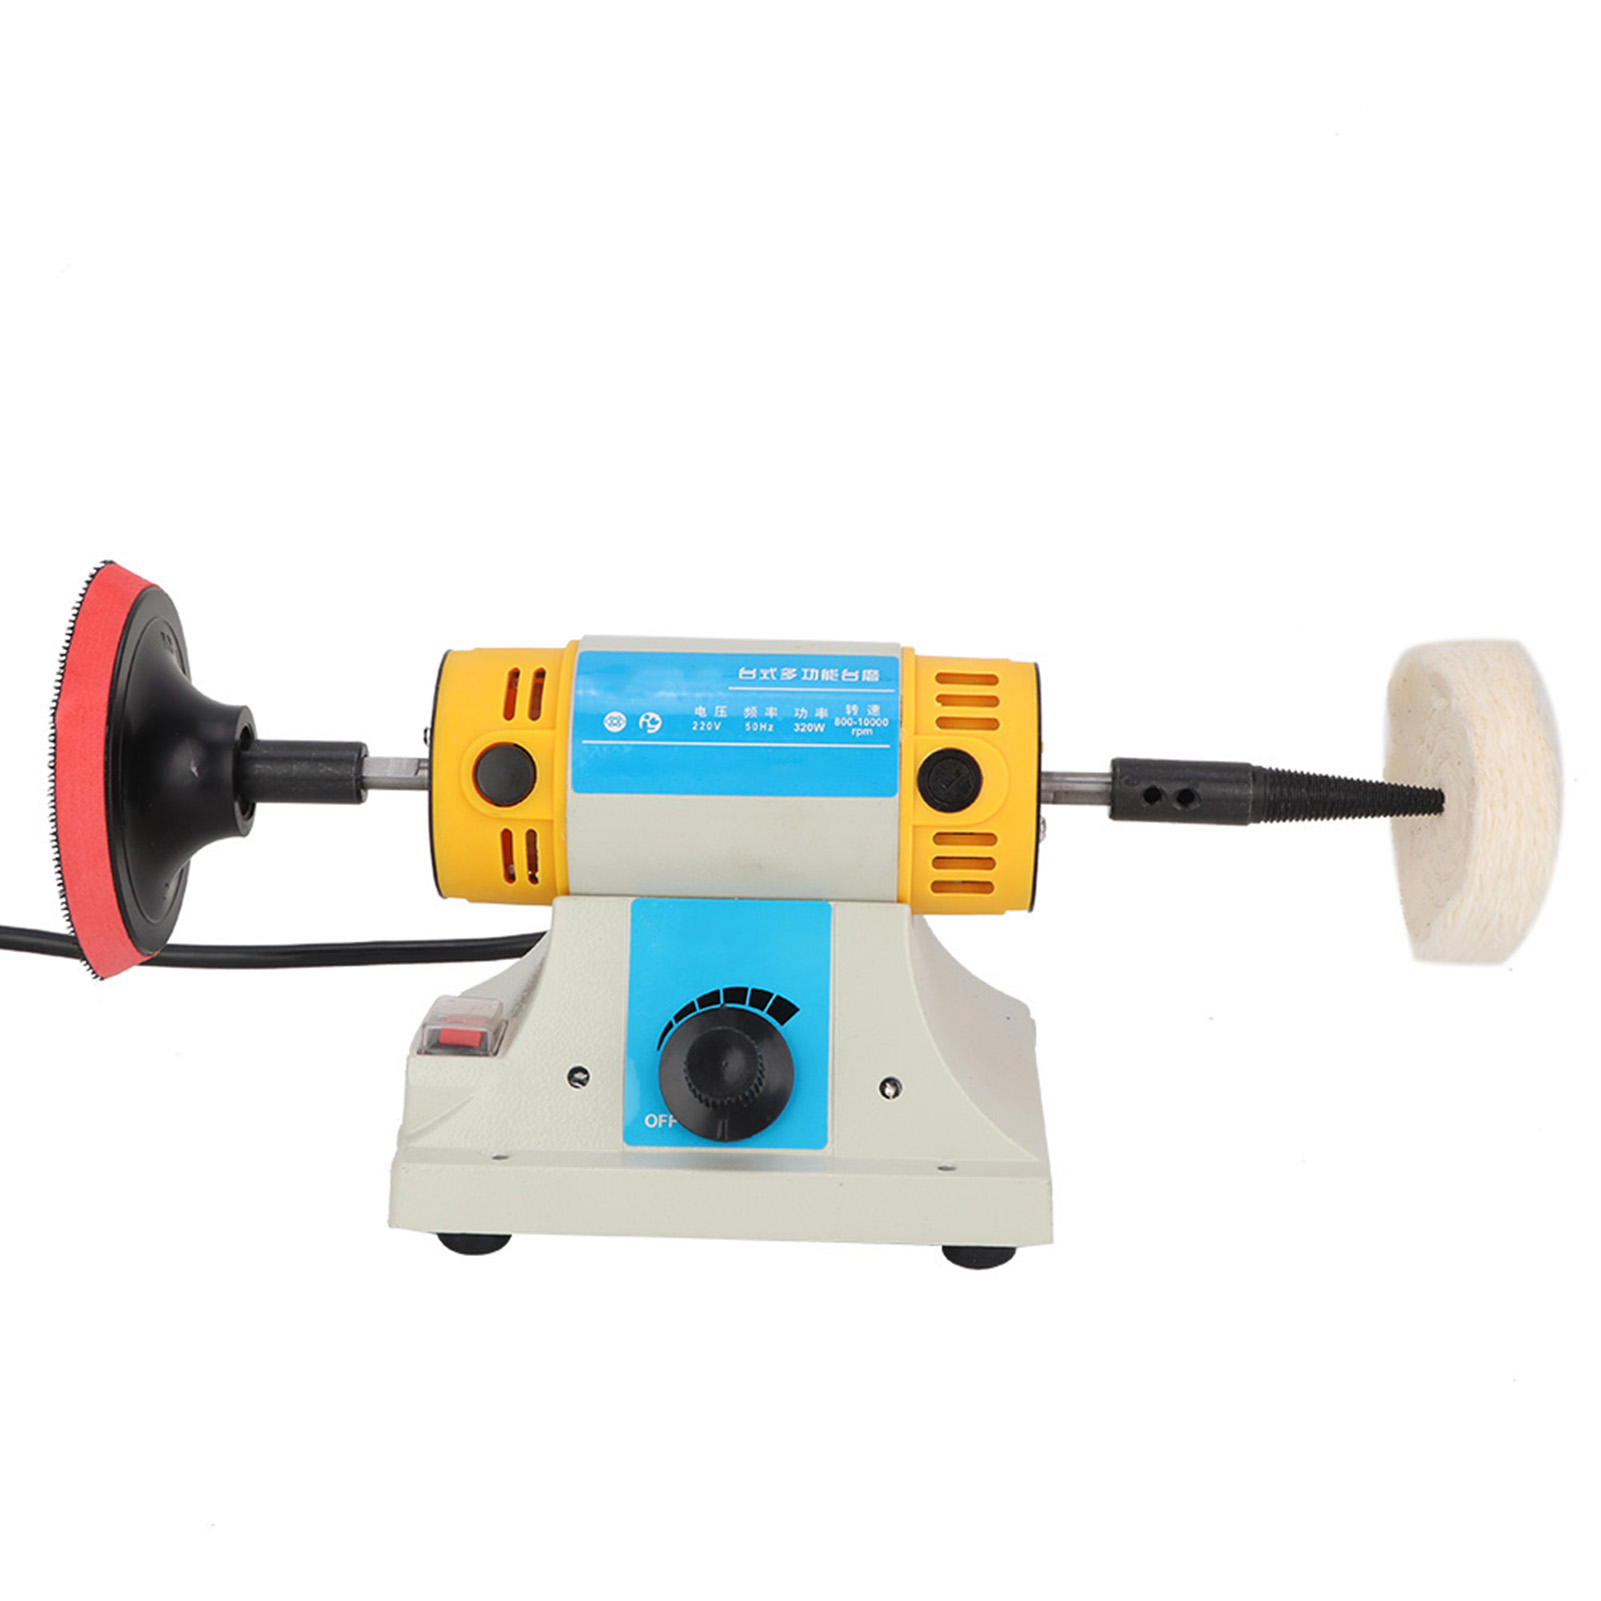 Mini Bench Grinder Rotary Shaft Die Carving Polisher